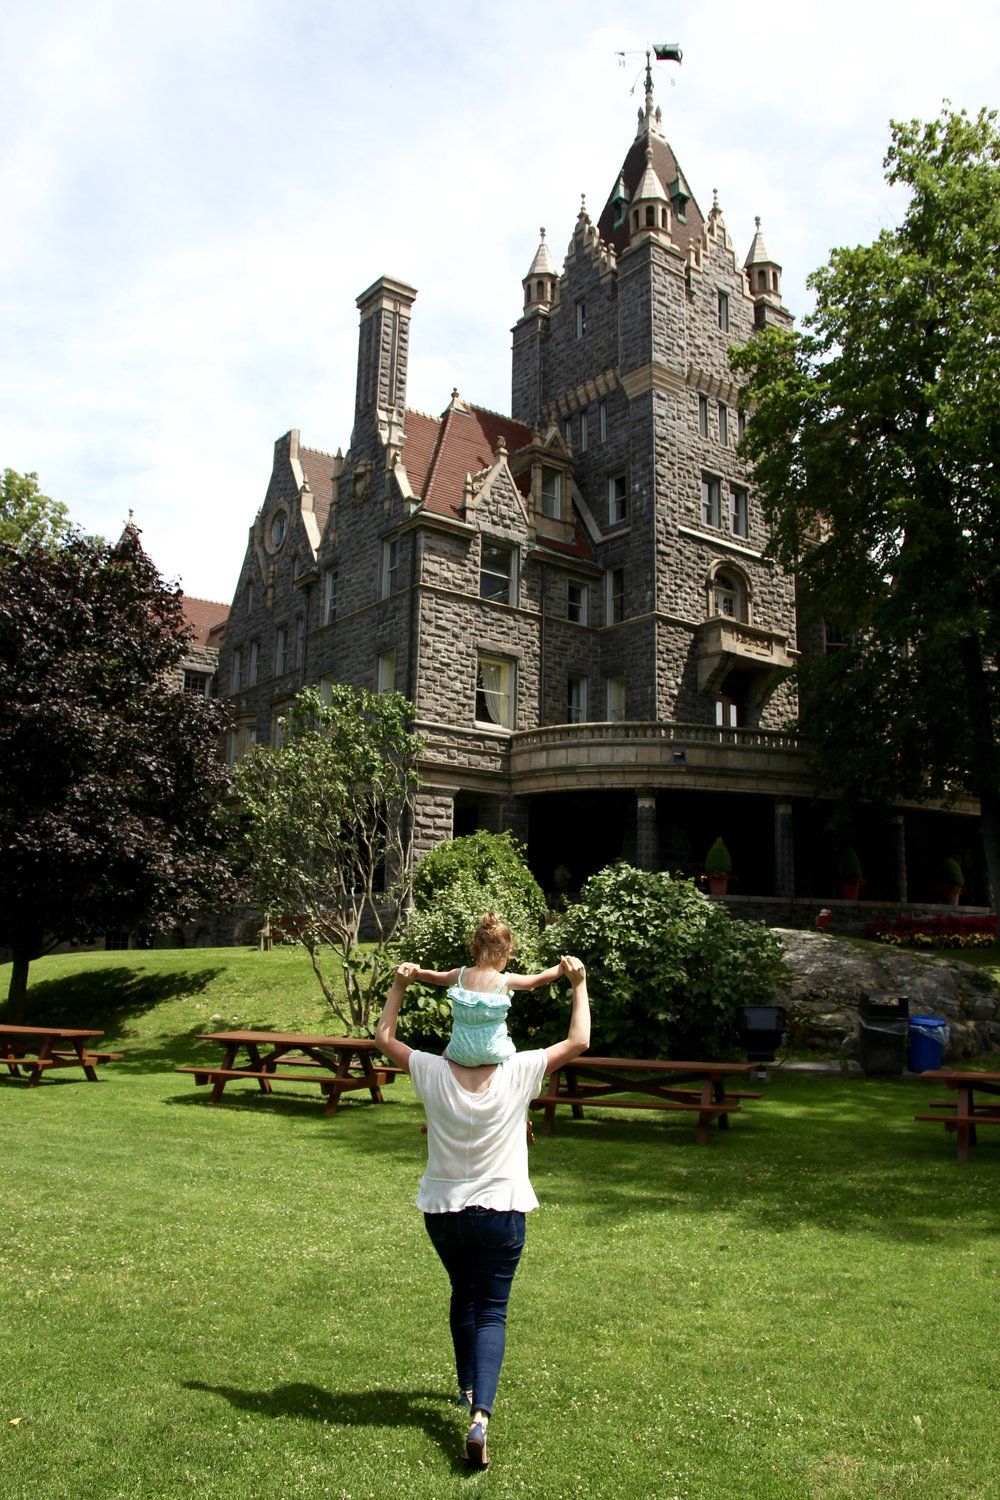 road_trip_to_boldt_castle.jpg